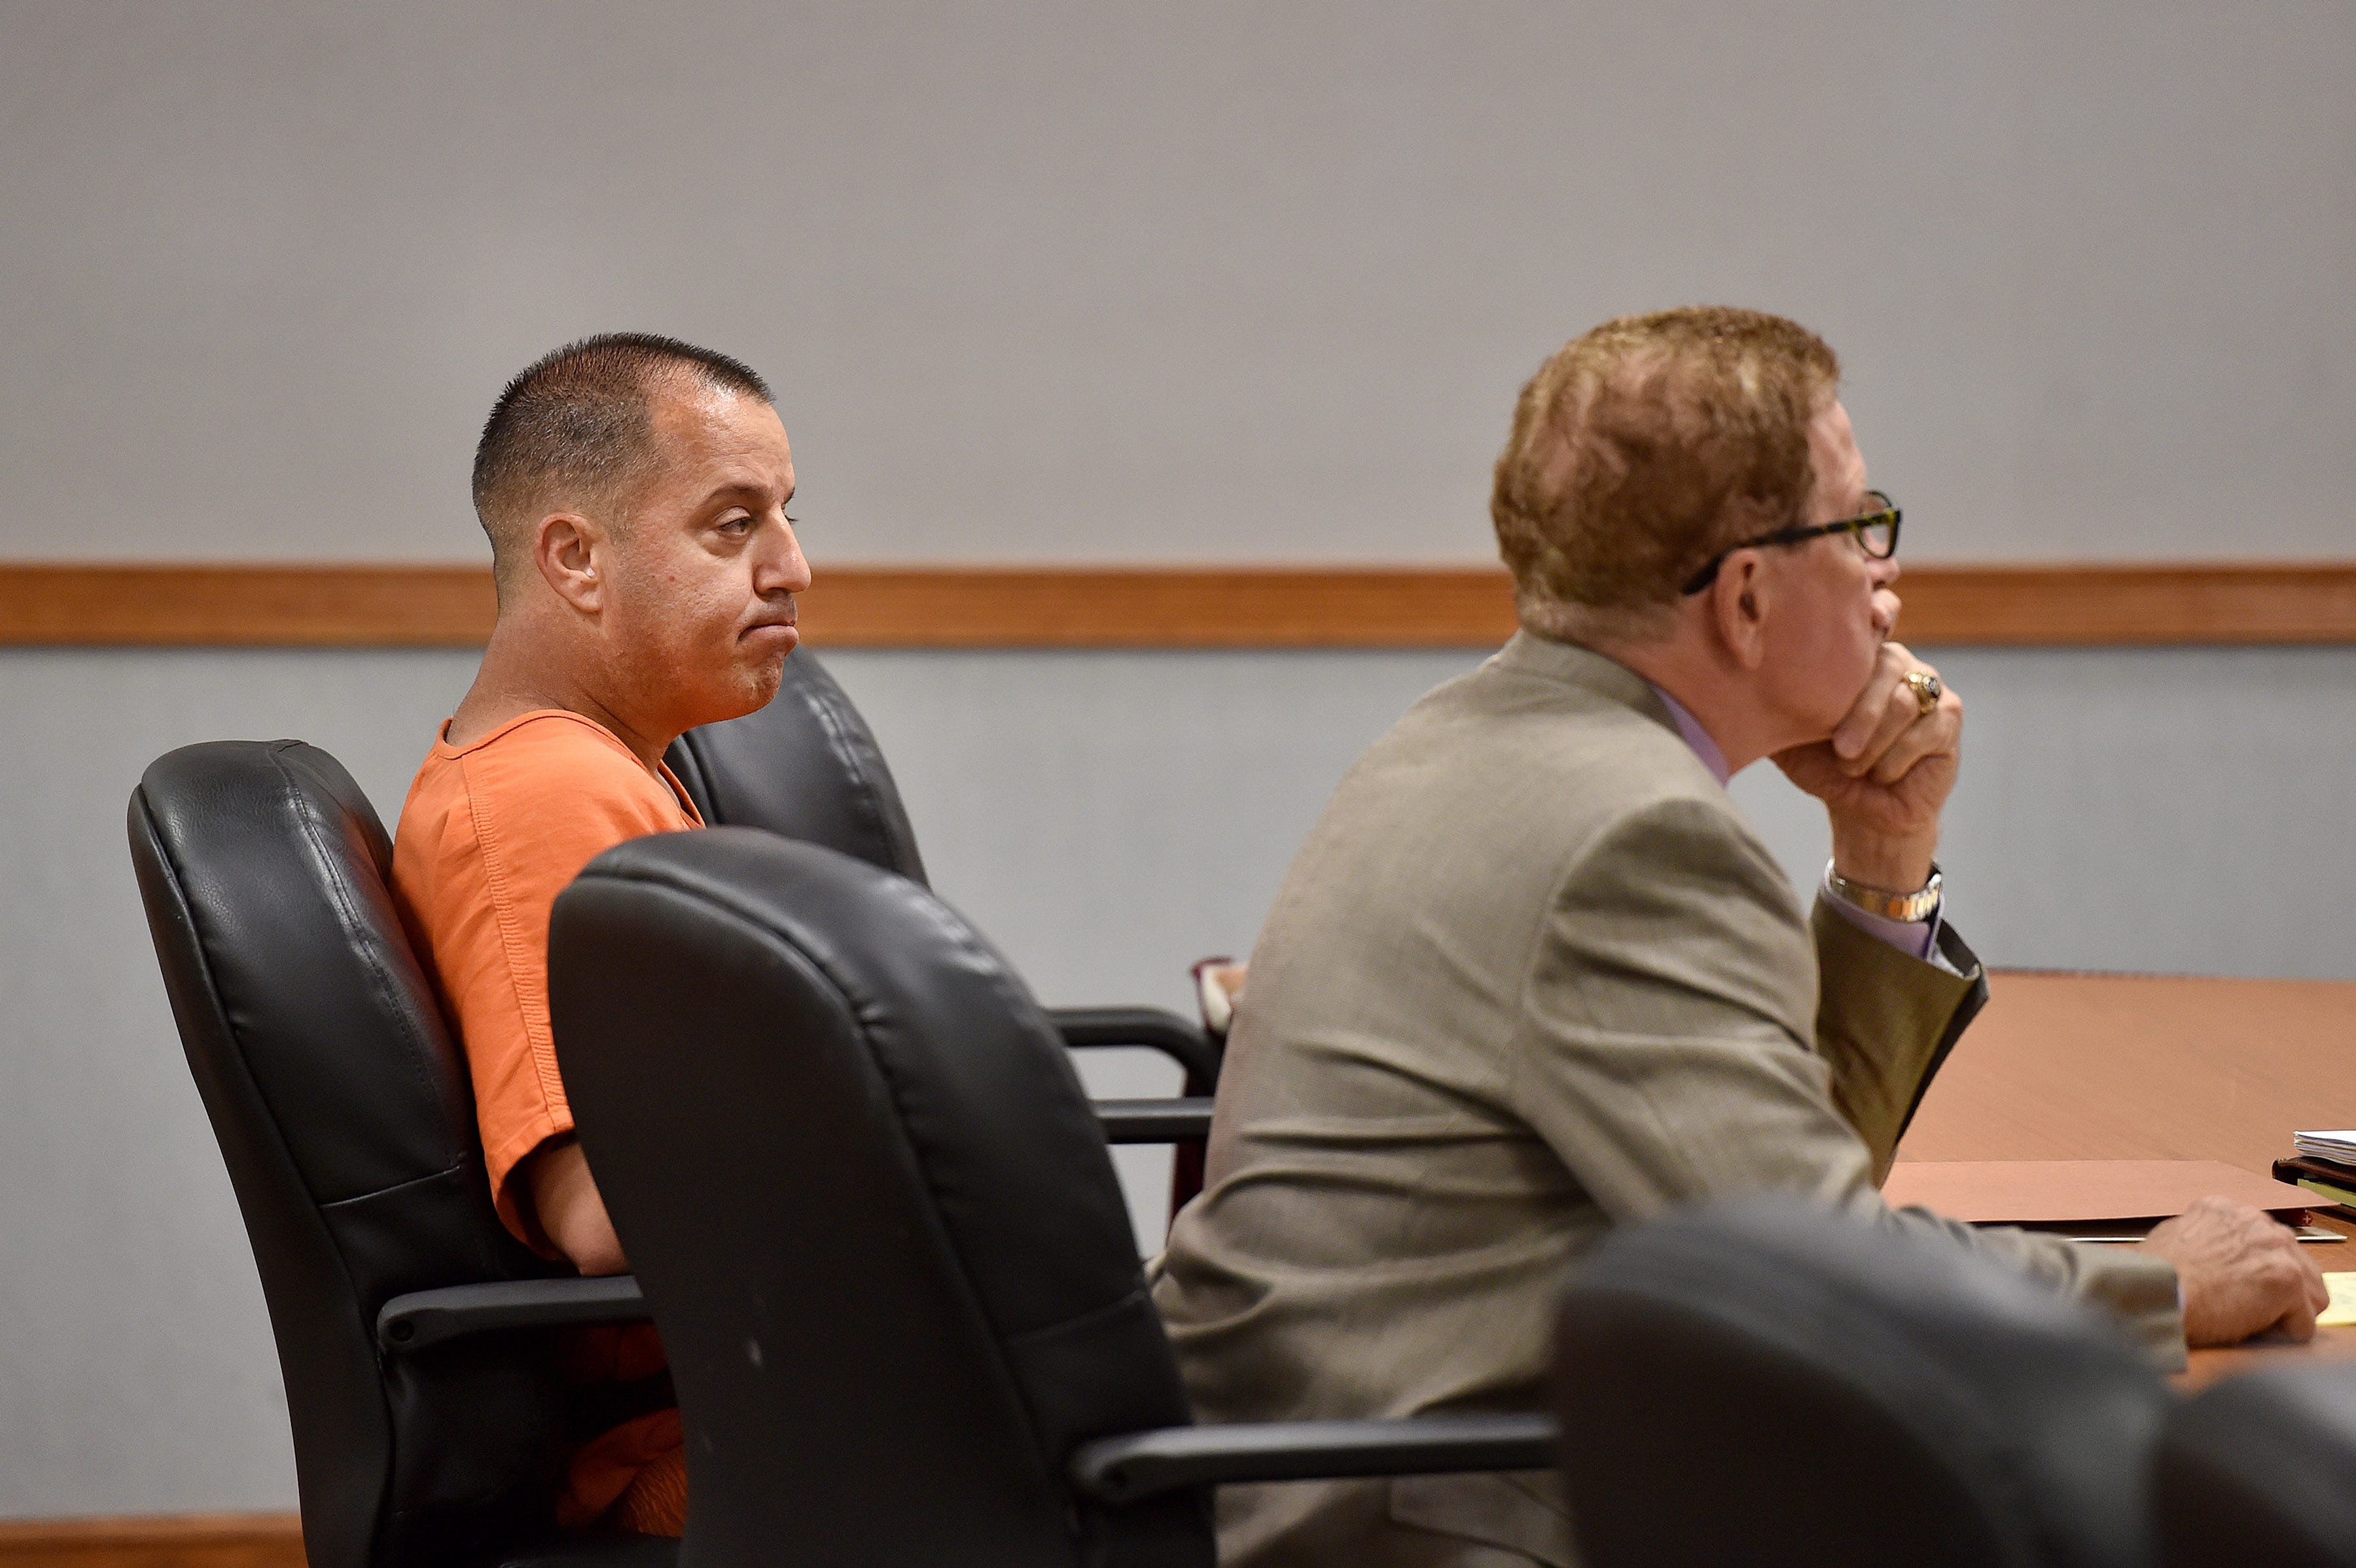 Judge Pulls Plug On Victor Brancacciou0027s Resentencing For Murder, For Now